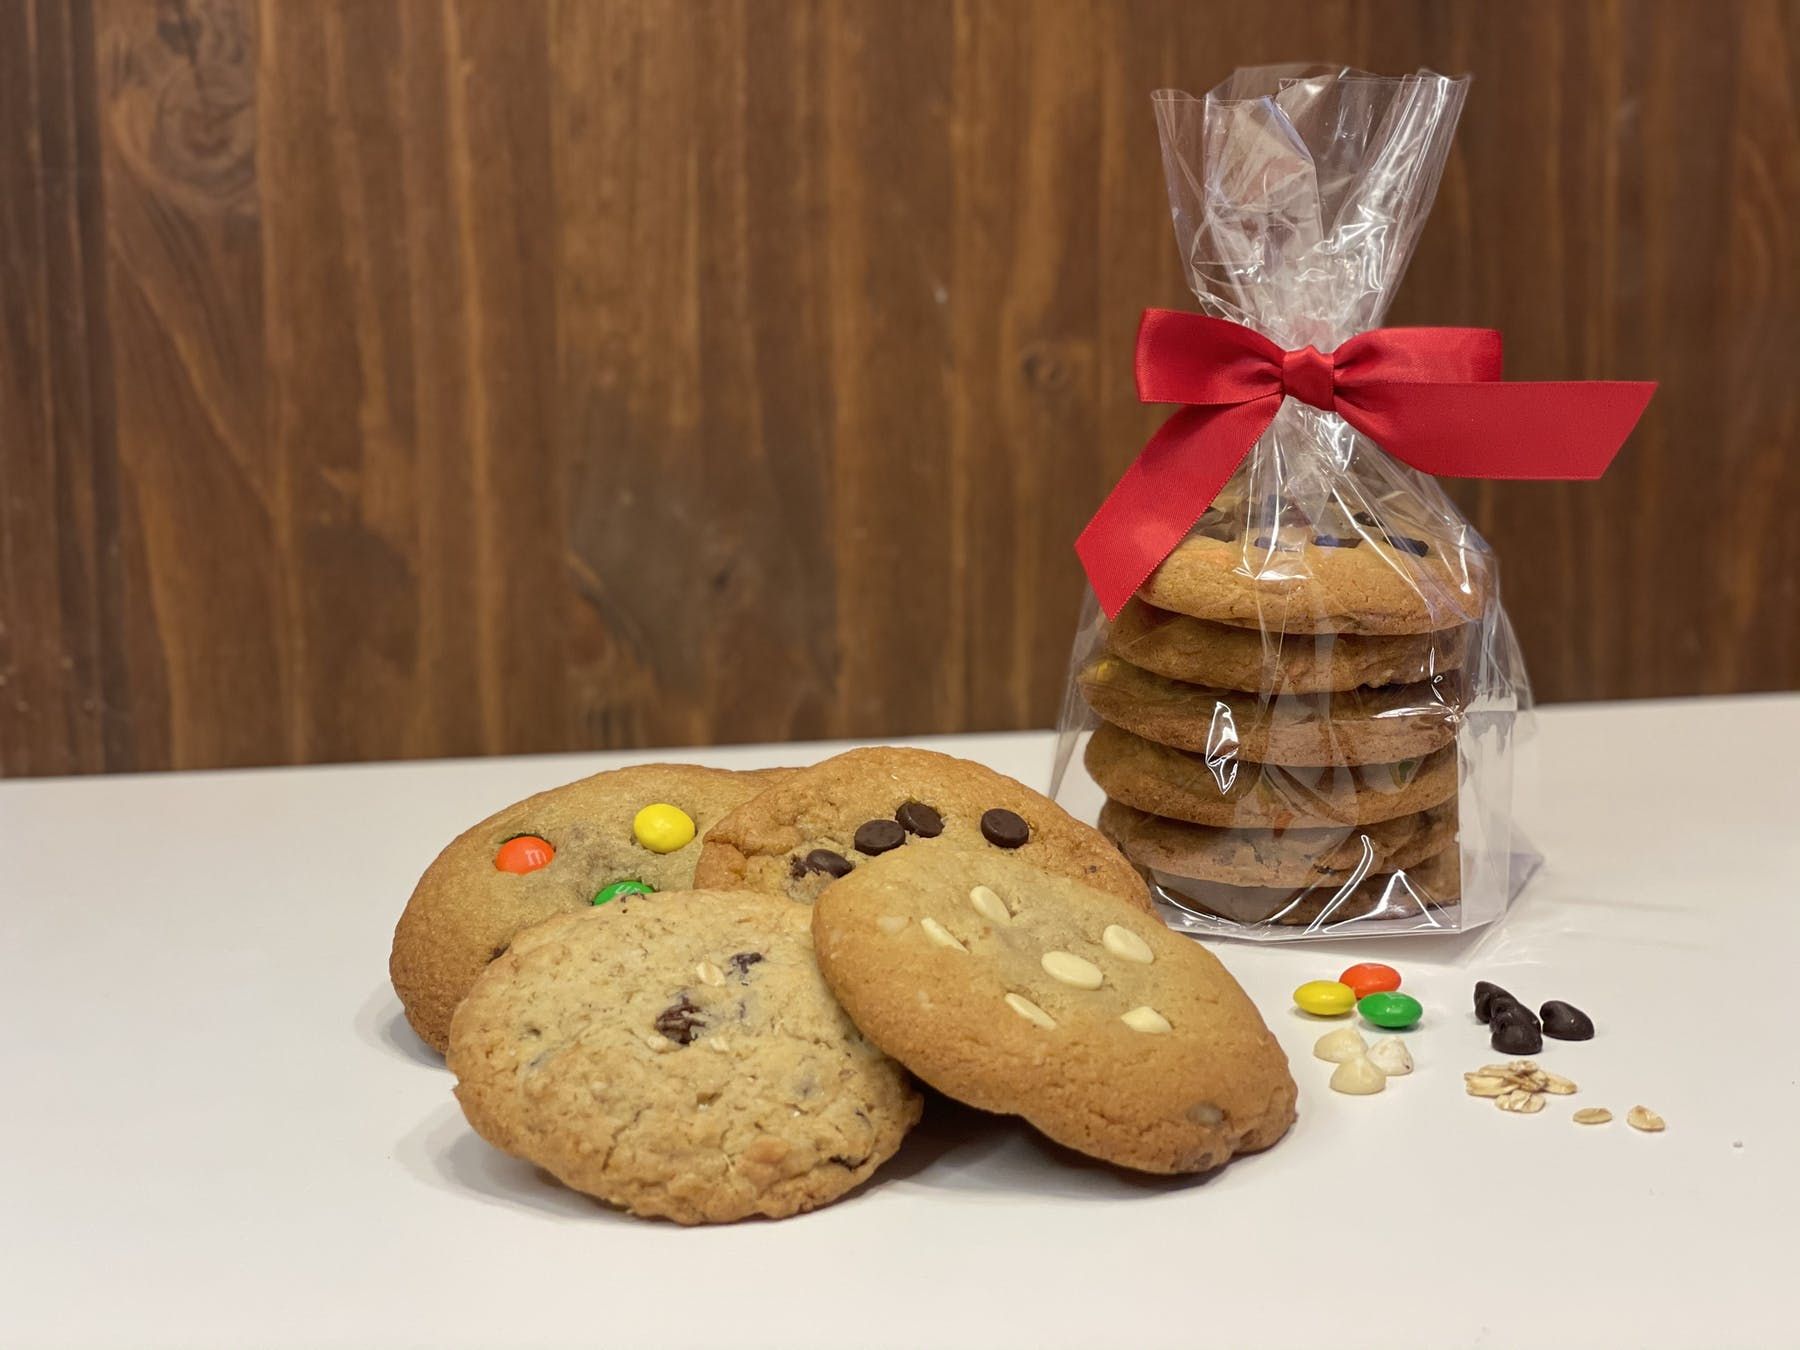 An assortment of cookies on a table